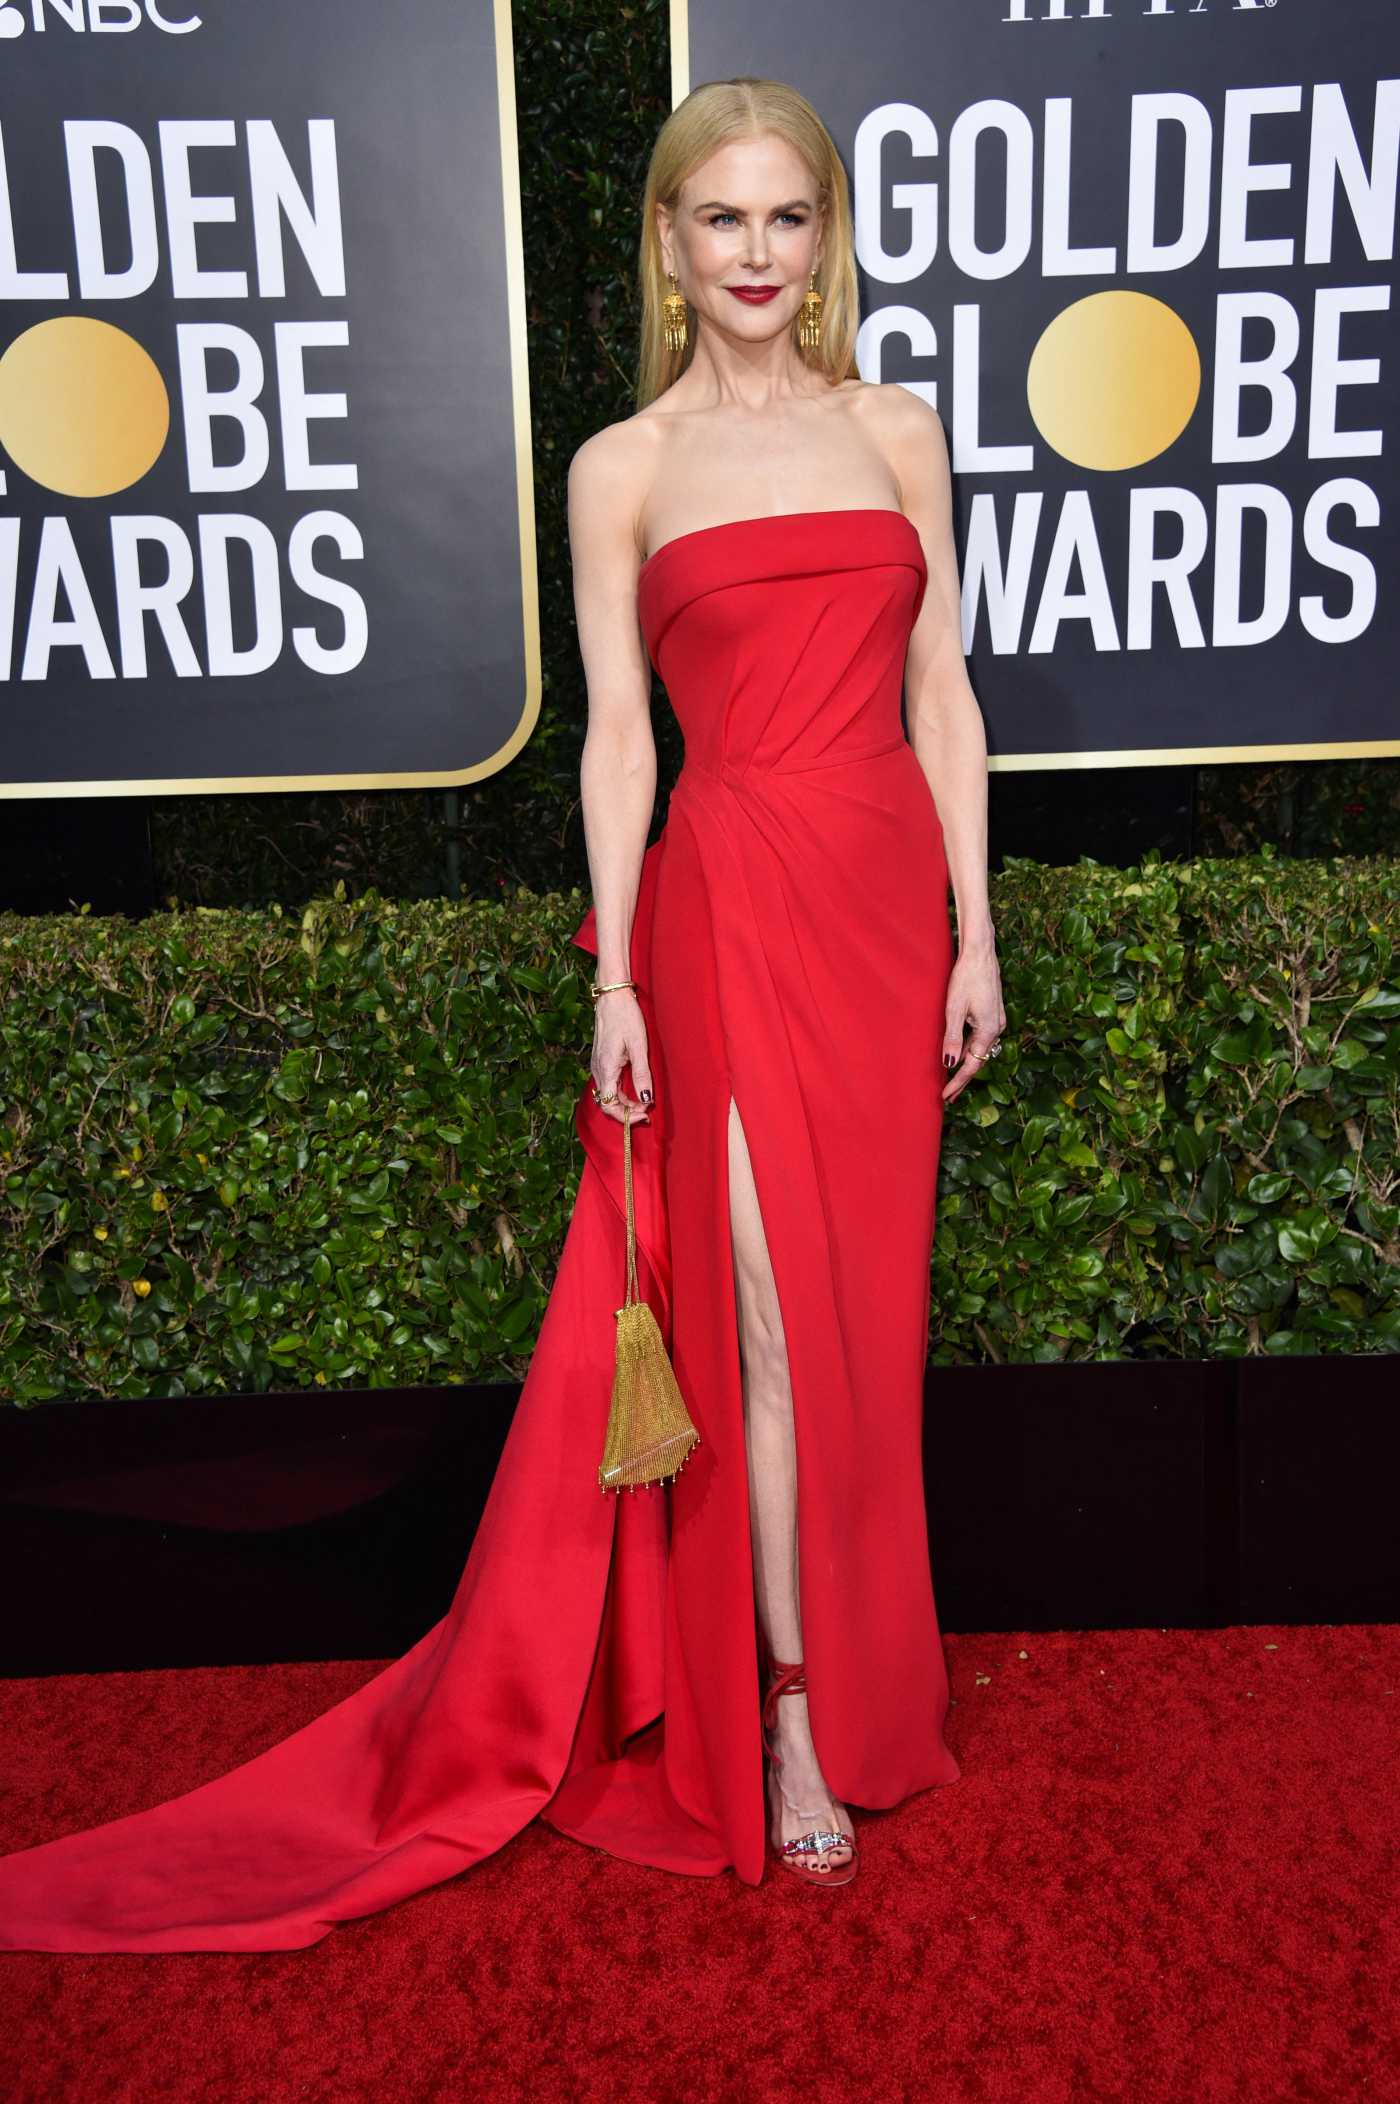 Nicole Kidman Attends the 77th Annual Golden Globe Awards at the Beverly Hilton Hotel in Beverly Hills 01/05/2020